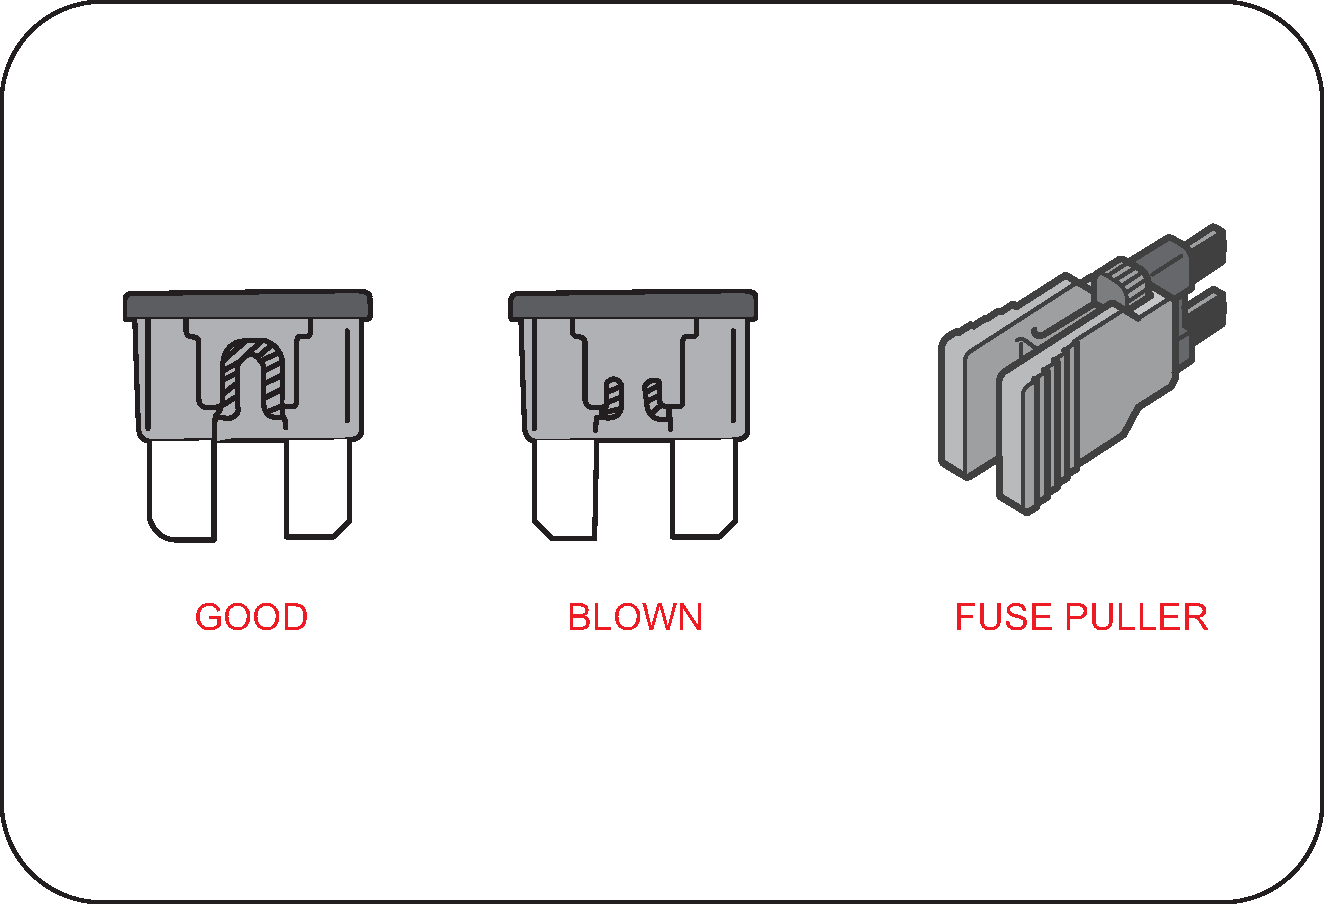 Main Frame Blown Old Fuse Box Graphic